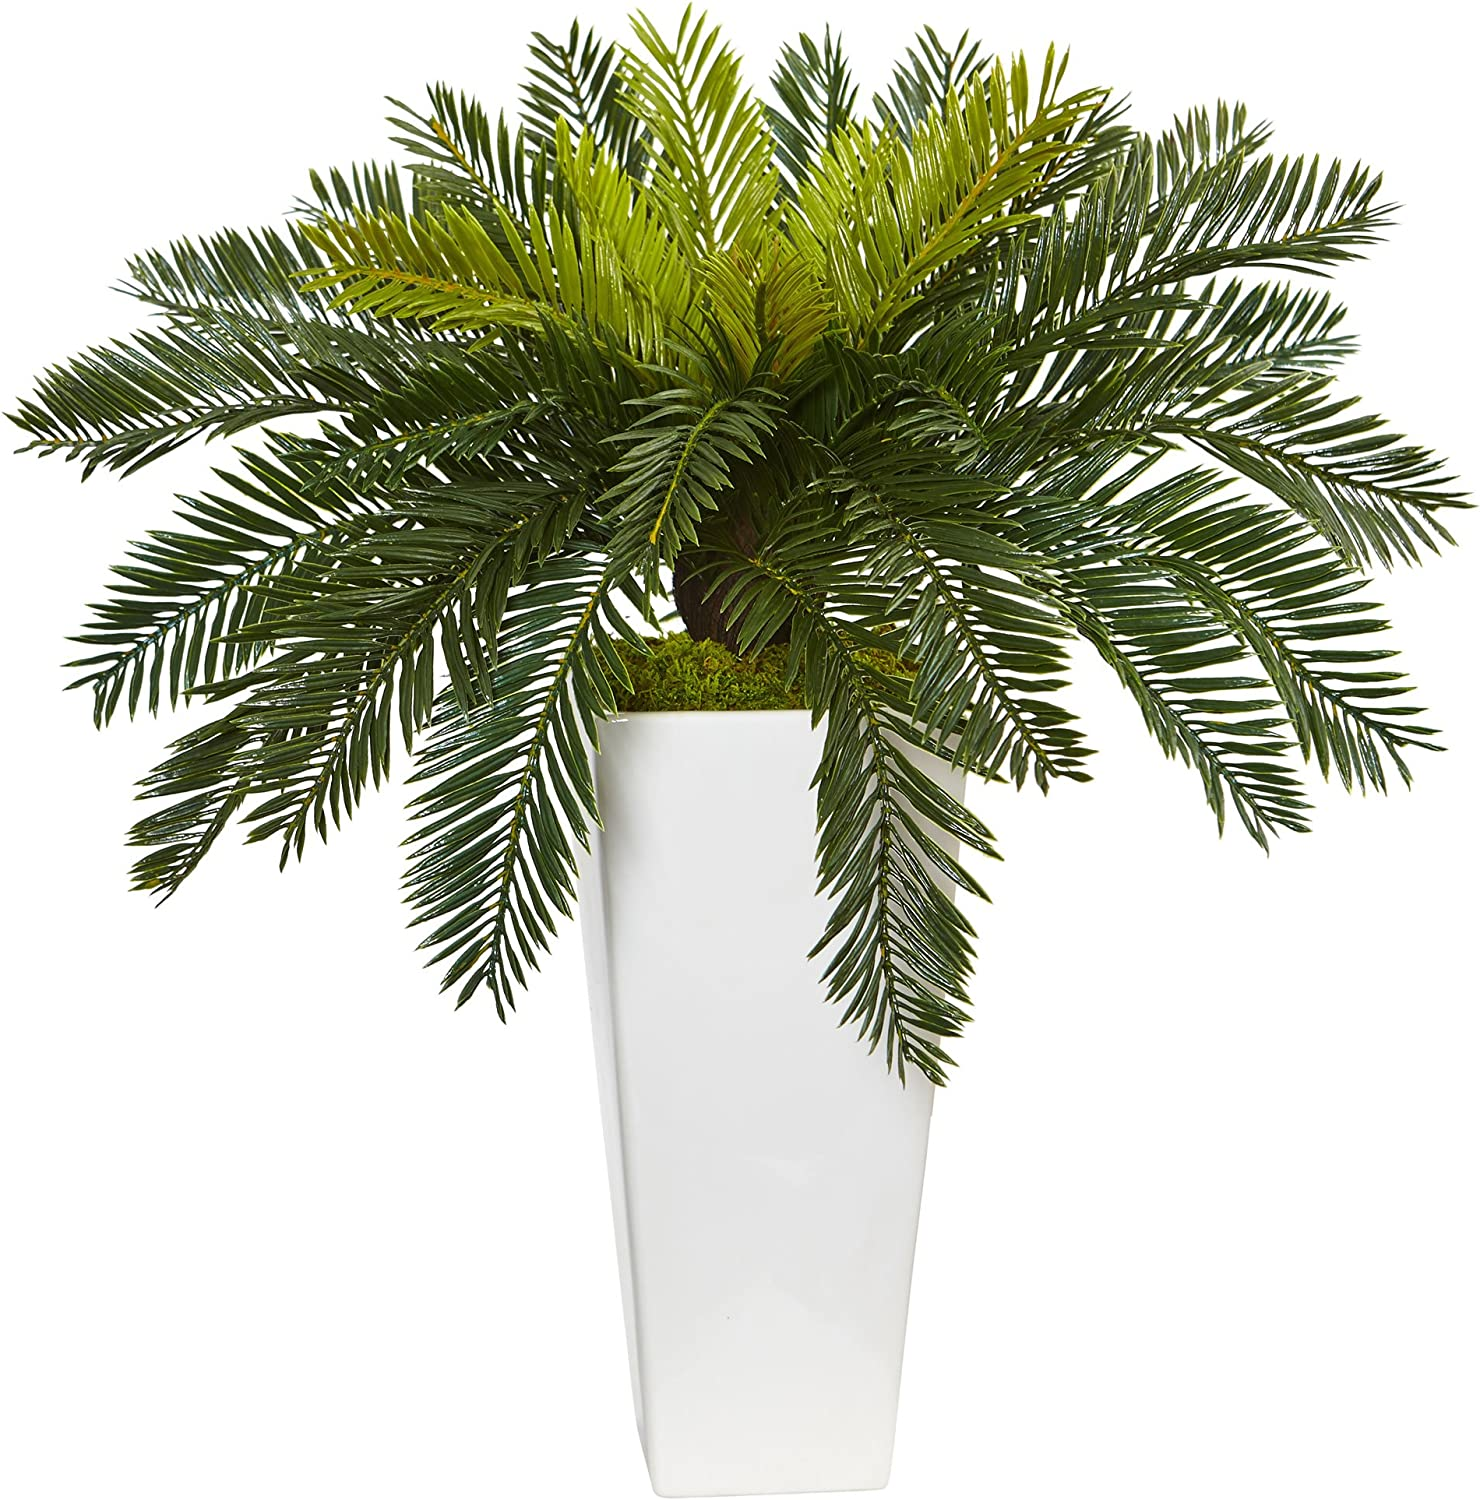 Artificial Cycas plant